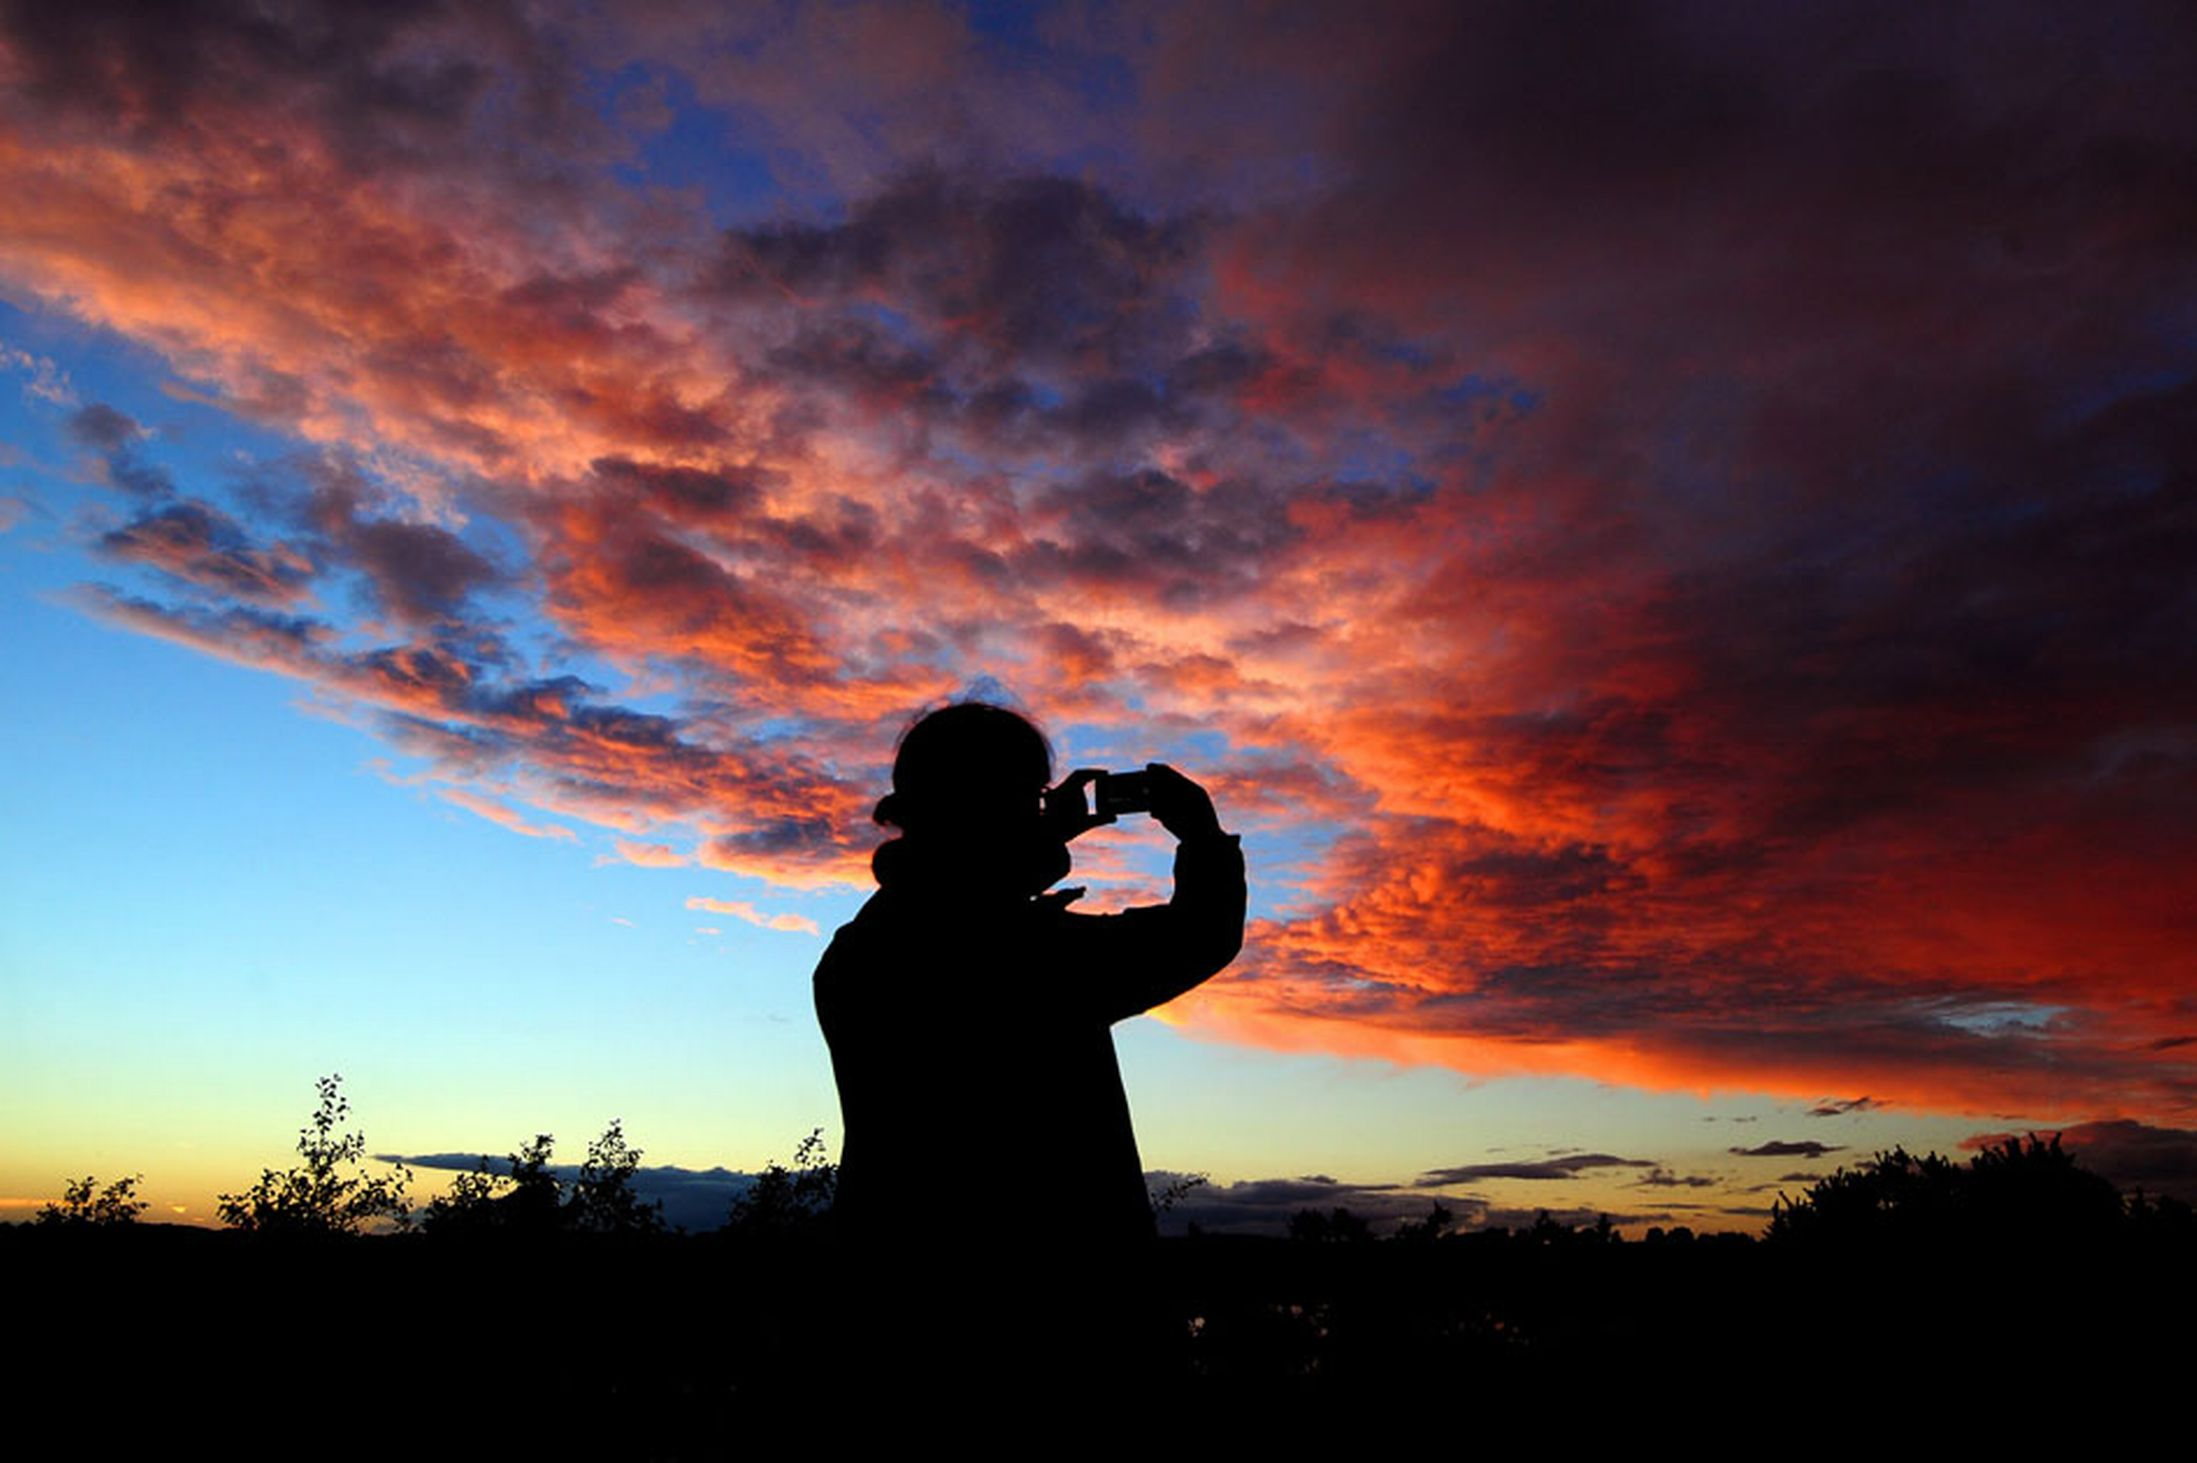 A-person-uses-a-phone-to-capture-a-sunset-sky-in-South-Derbyshire-19t-October-2641176